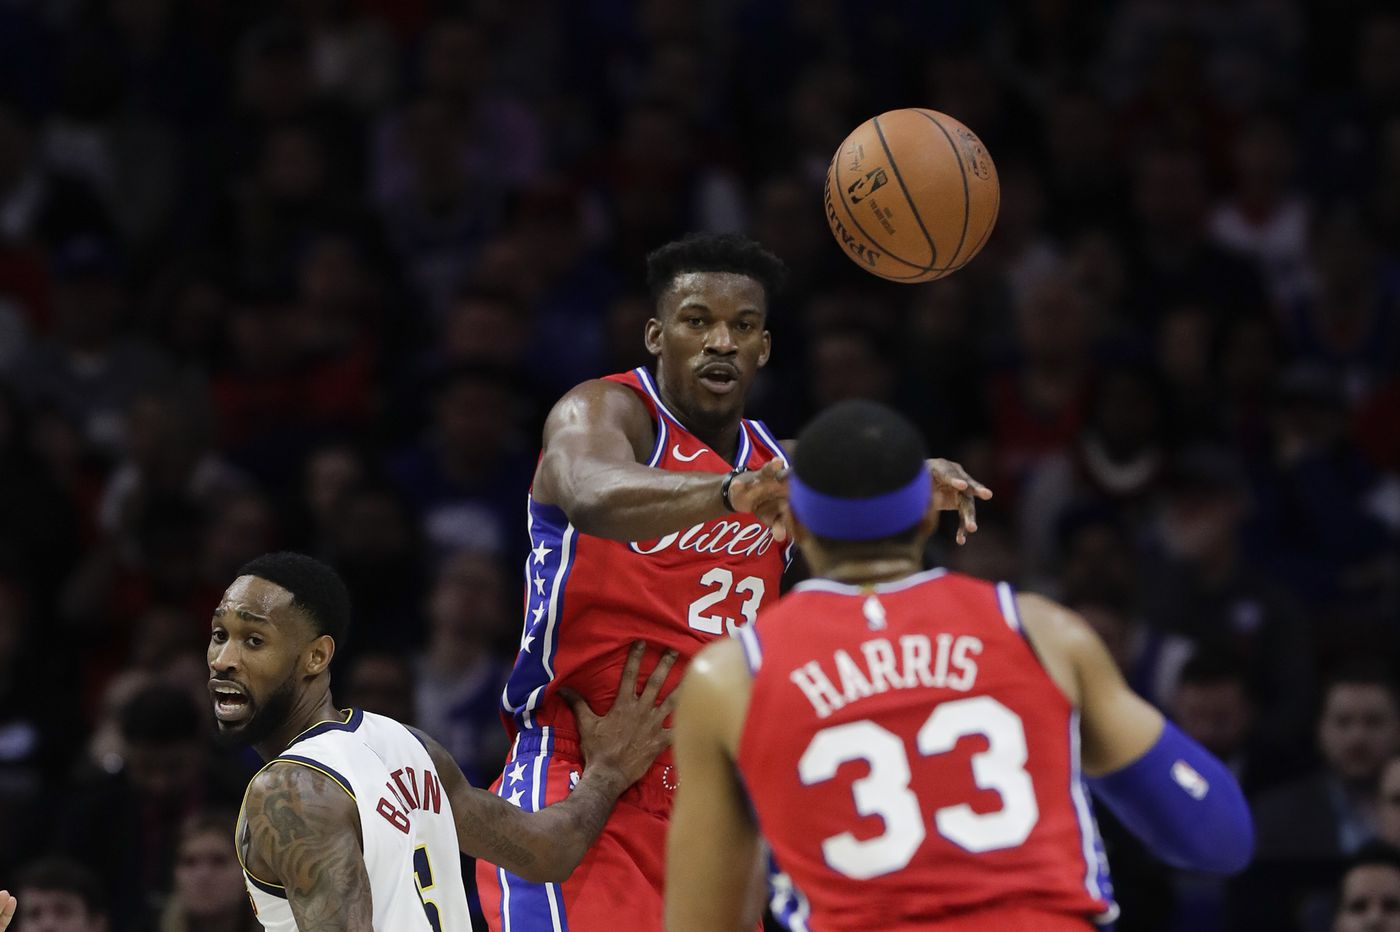 Have Sixers' trades made them a legitimate contender? We'll find out Sunday when they face the Bucks | Keith Pompey